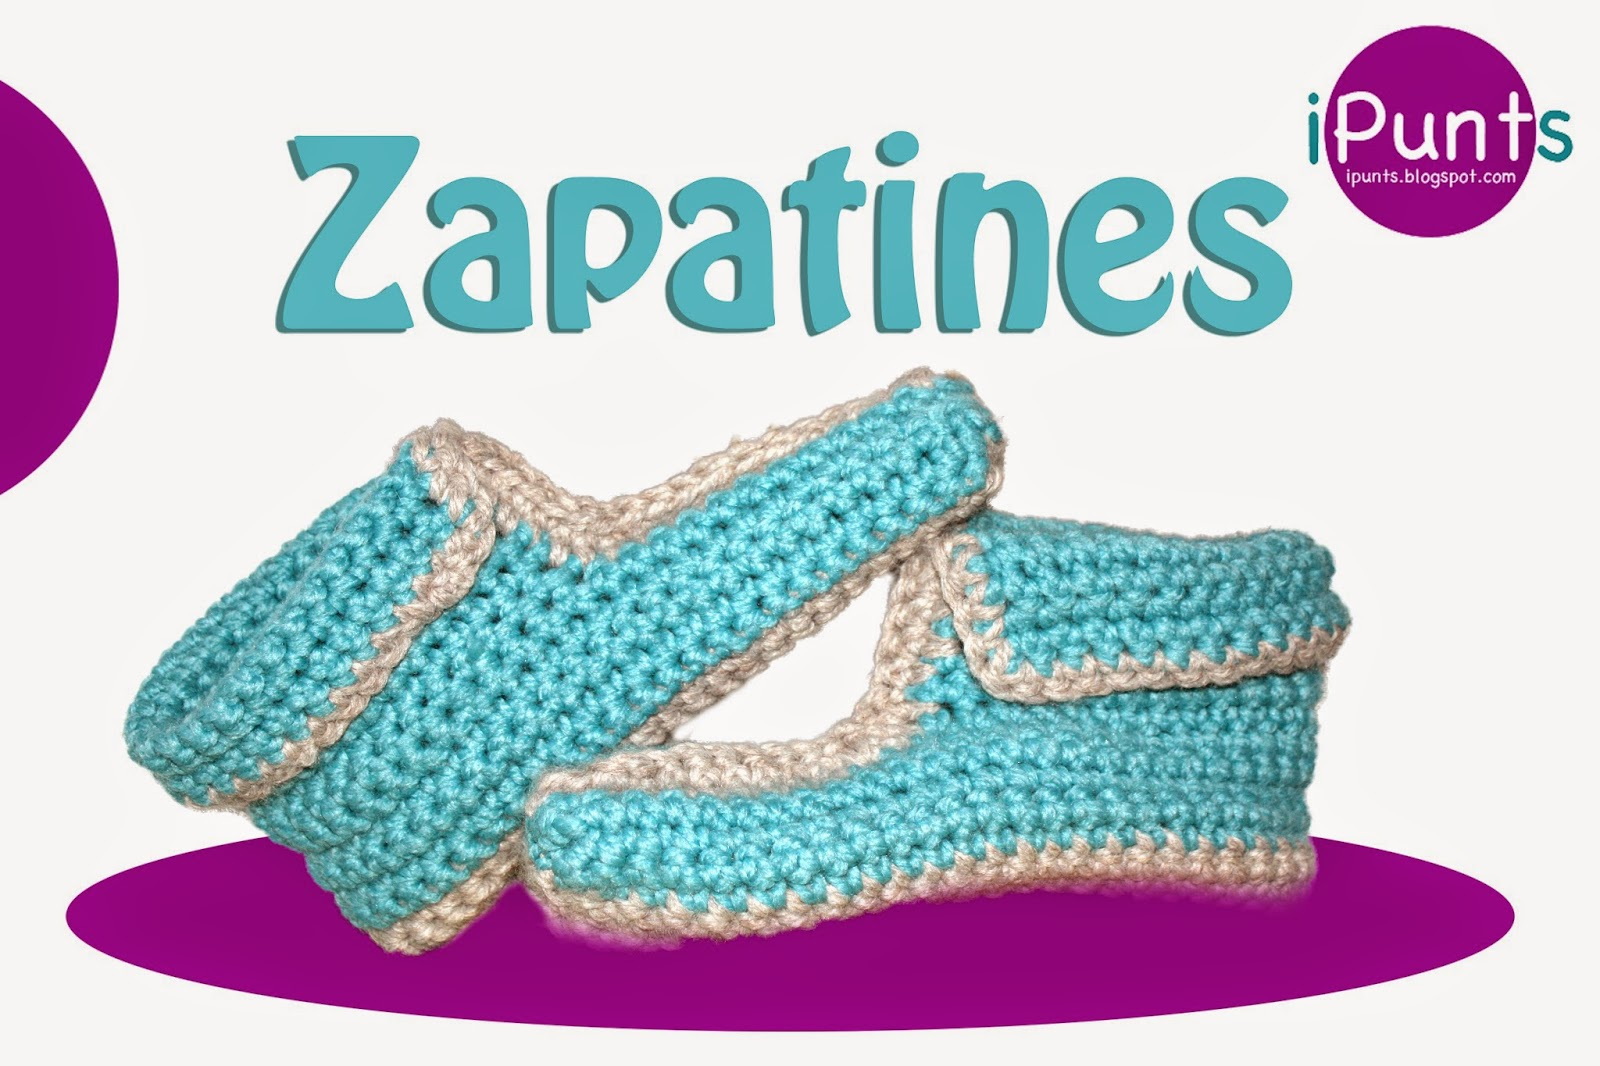 patrón gratis zapatillas crochet ganchillo ipunts